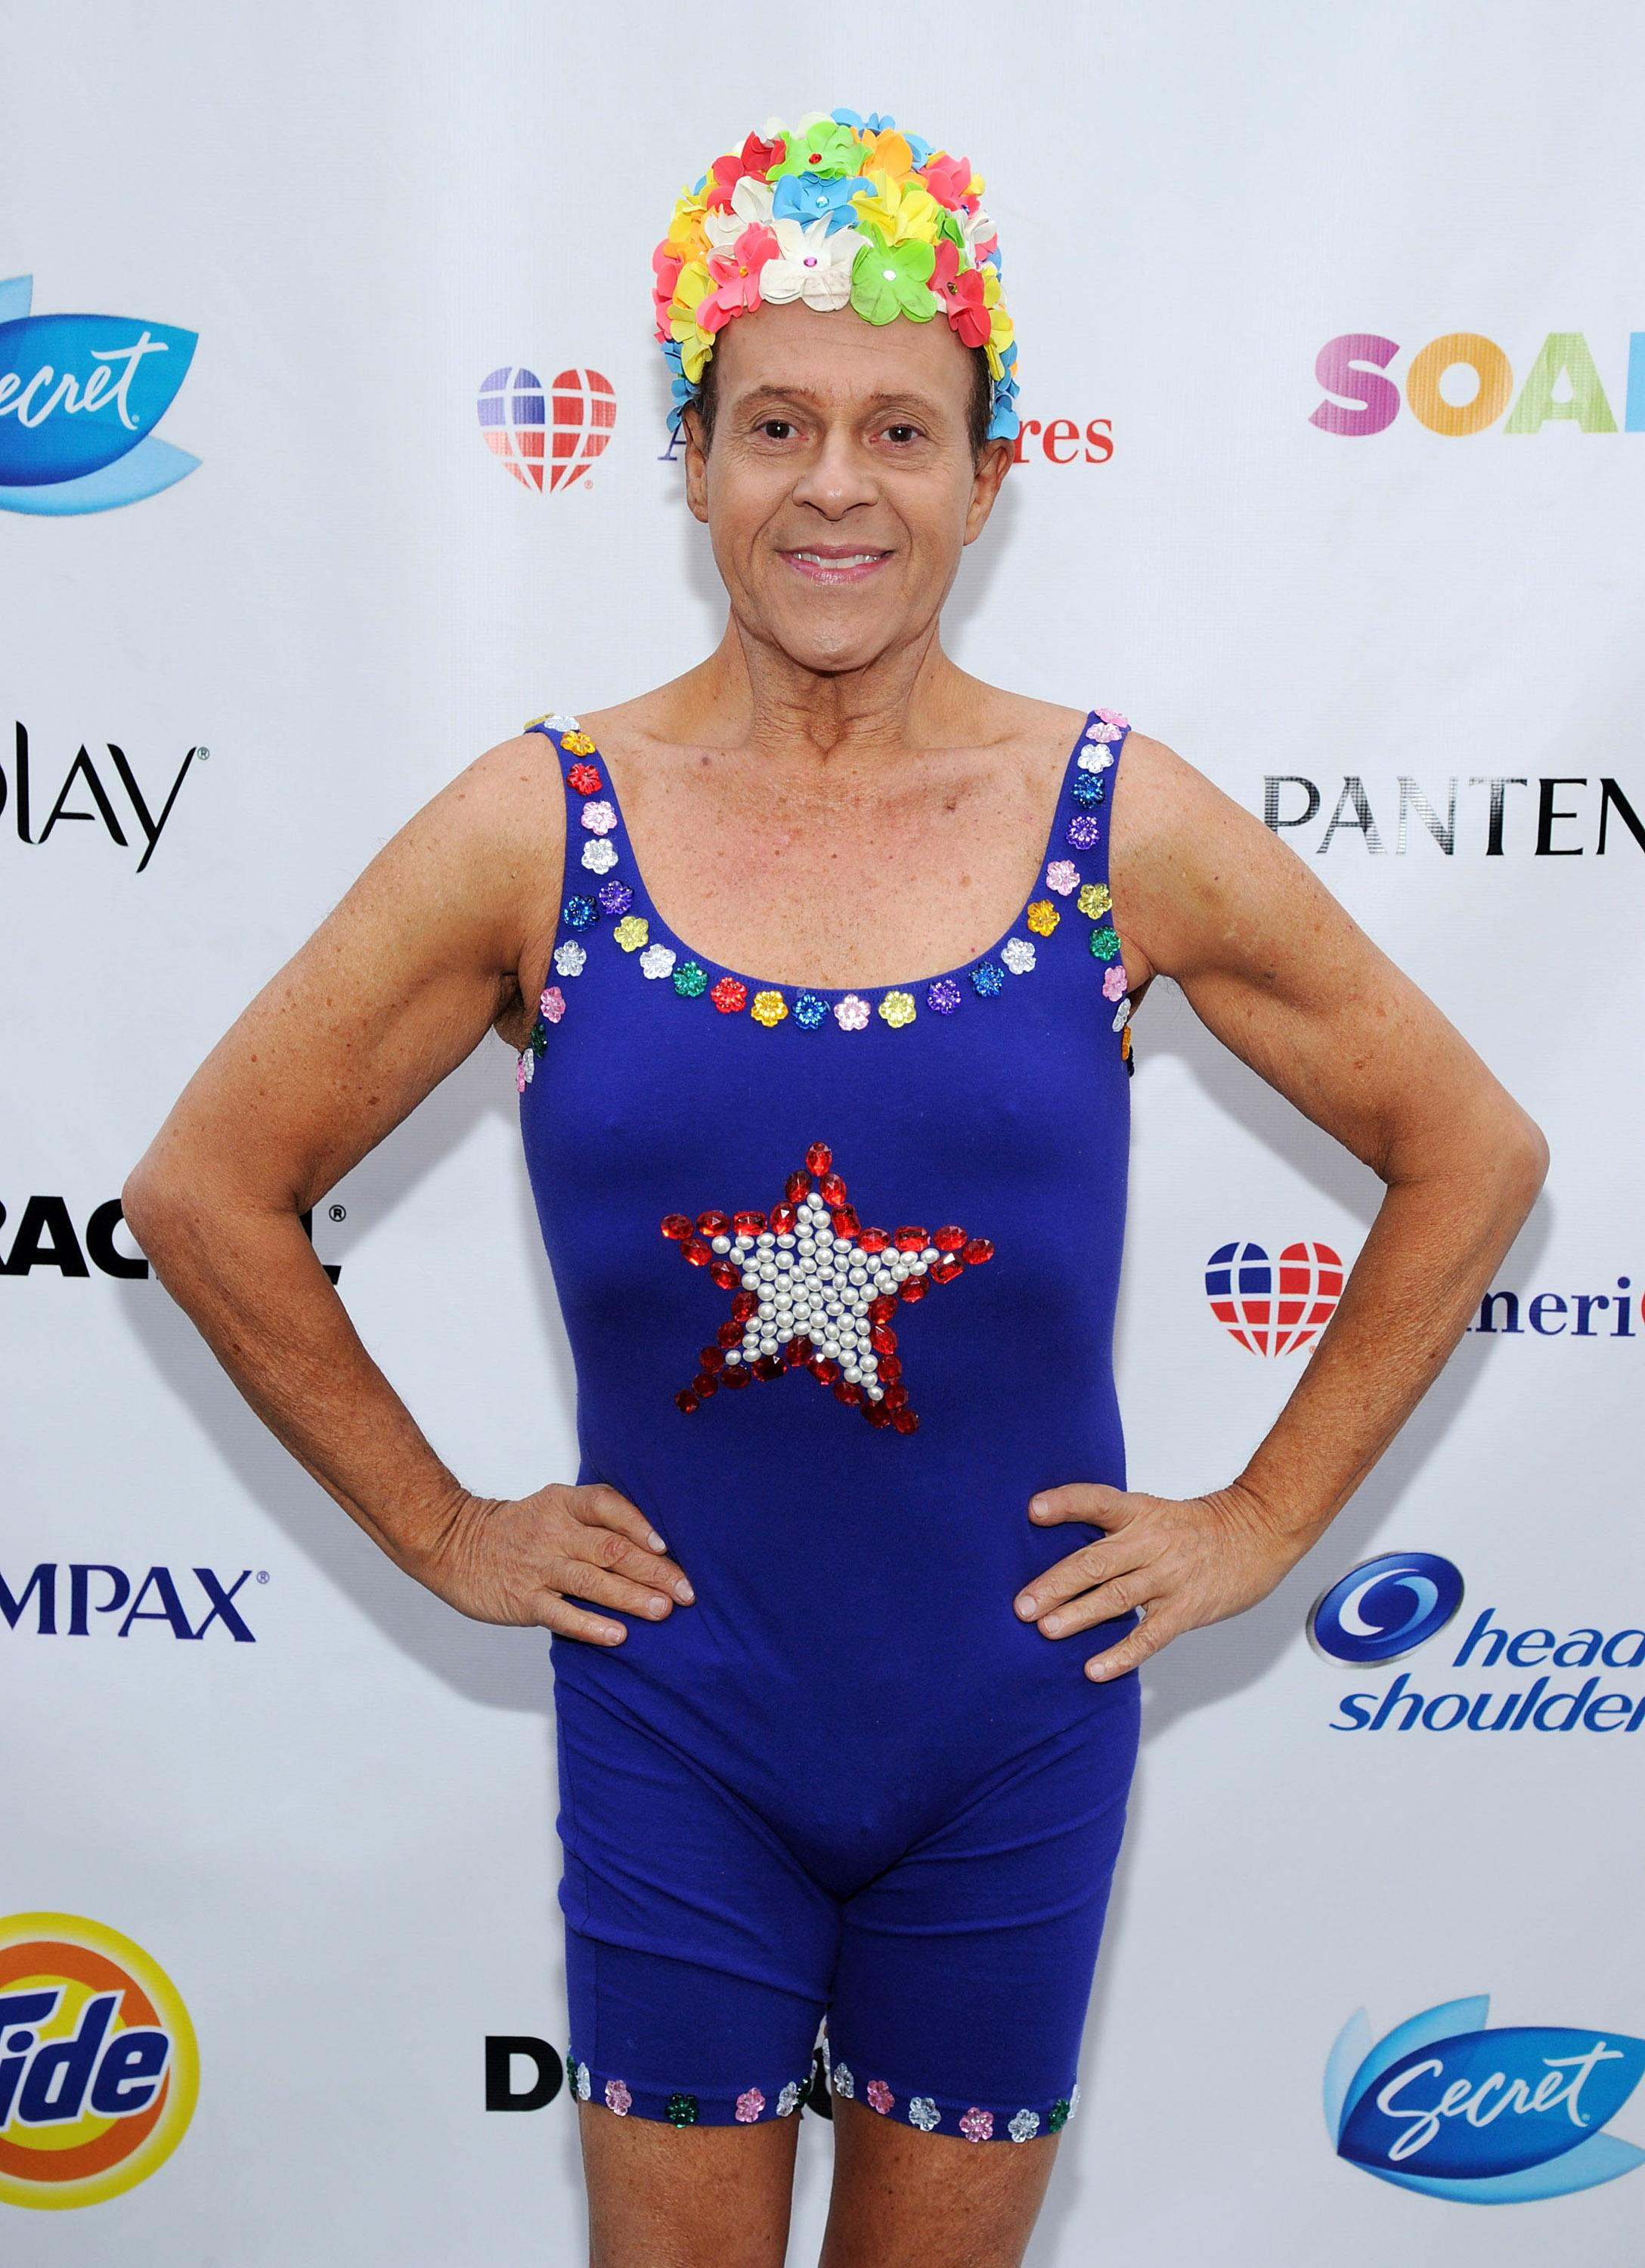 Richard Simmons is not transgender but must pay a tabloid $130K for saying he is